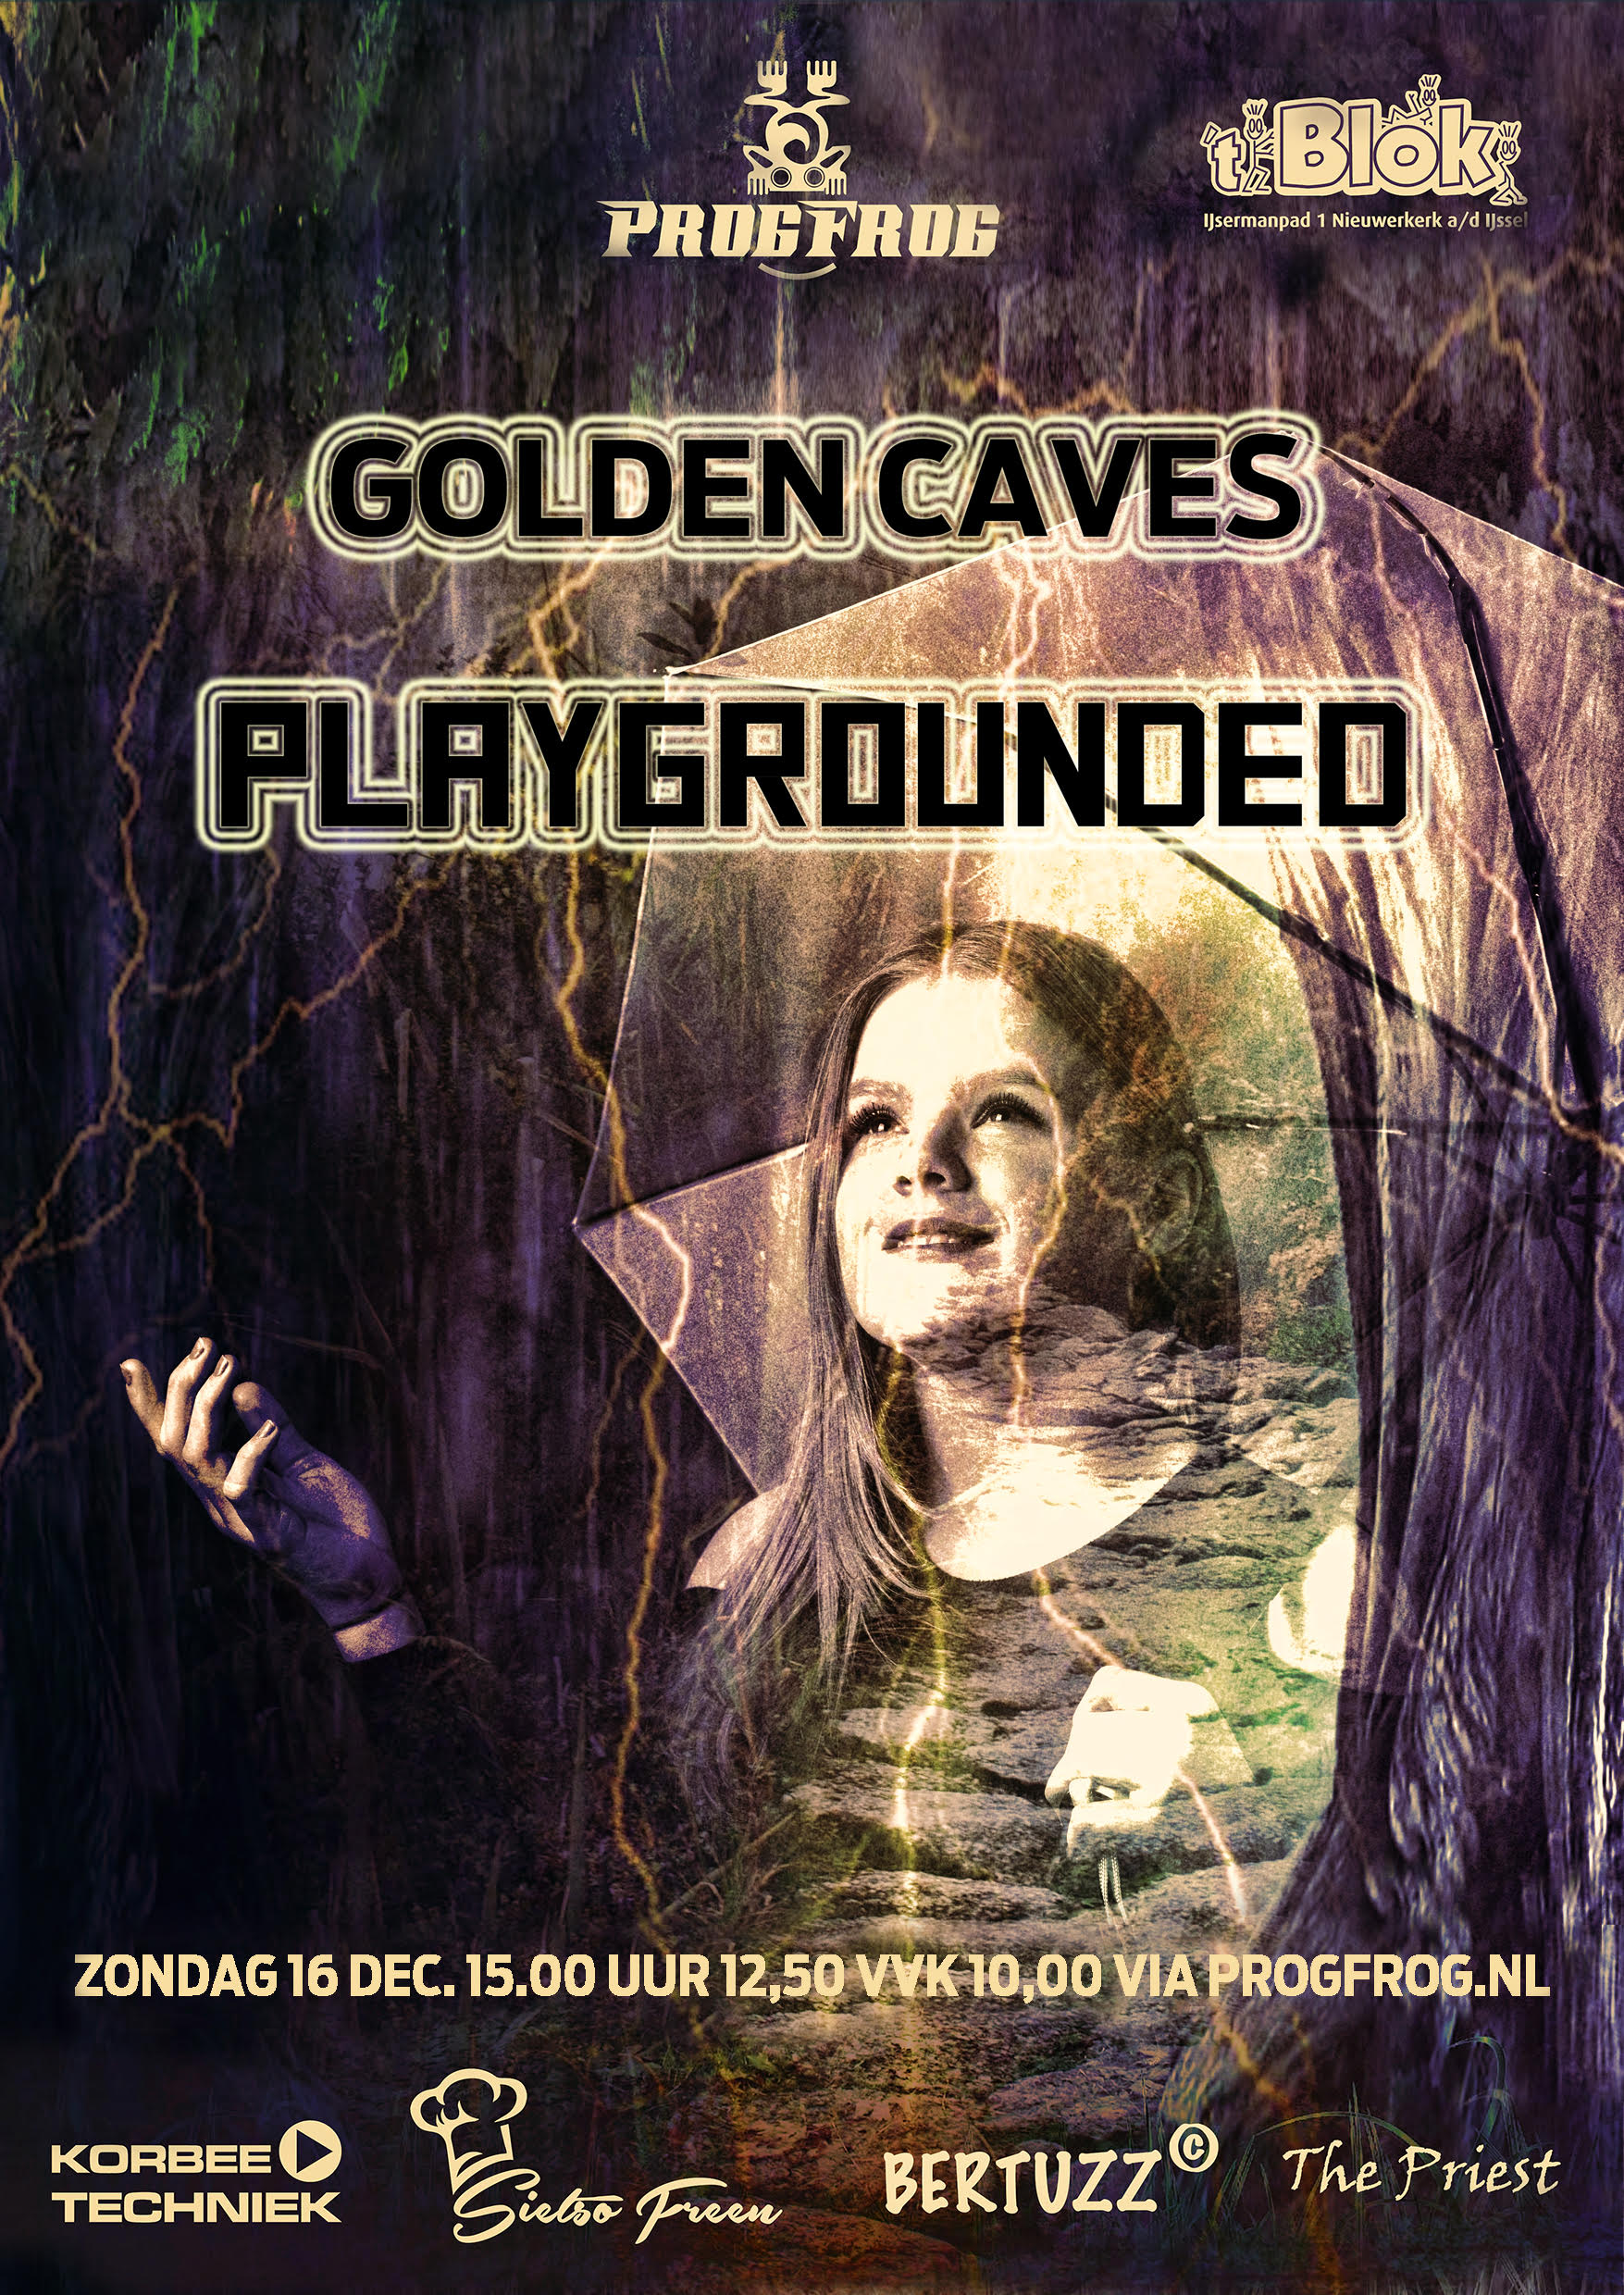 Golden Caves (NL) & Playgrounded (Greece)